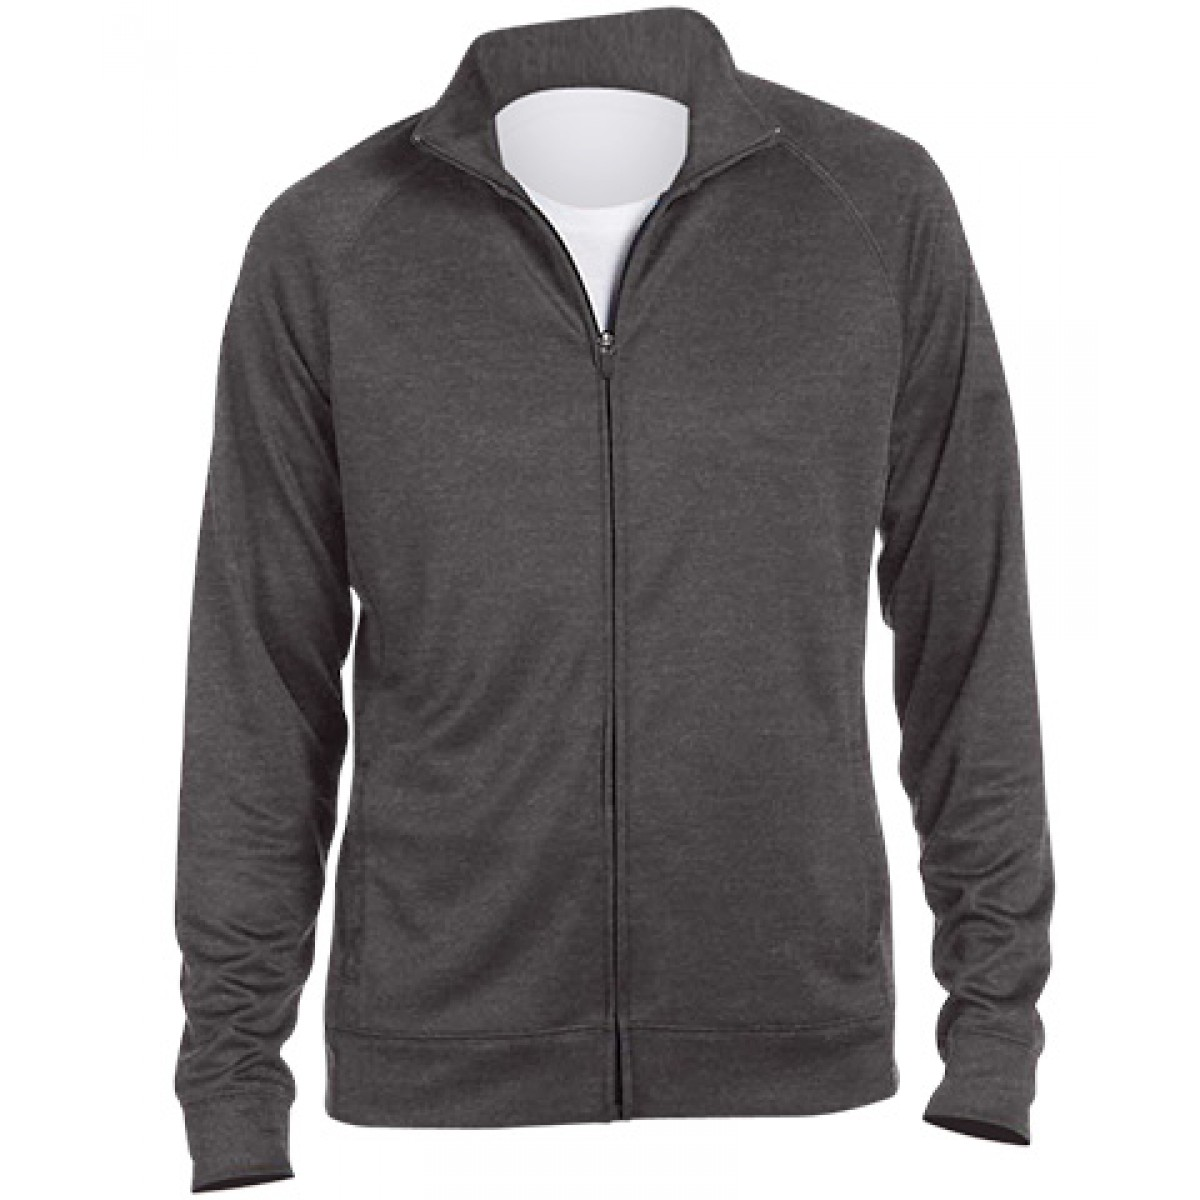 Men's Lightweight Sports Jacket-Sports Grey-YM